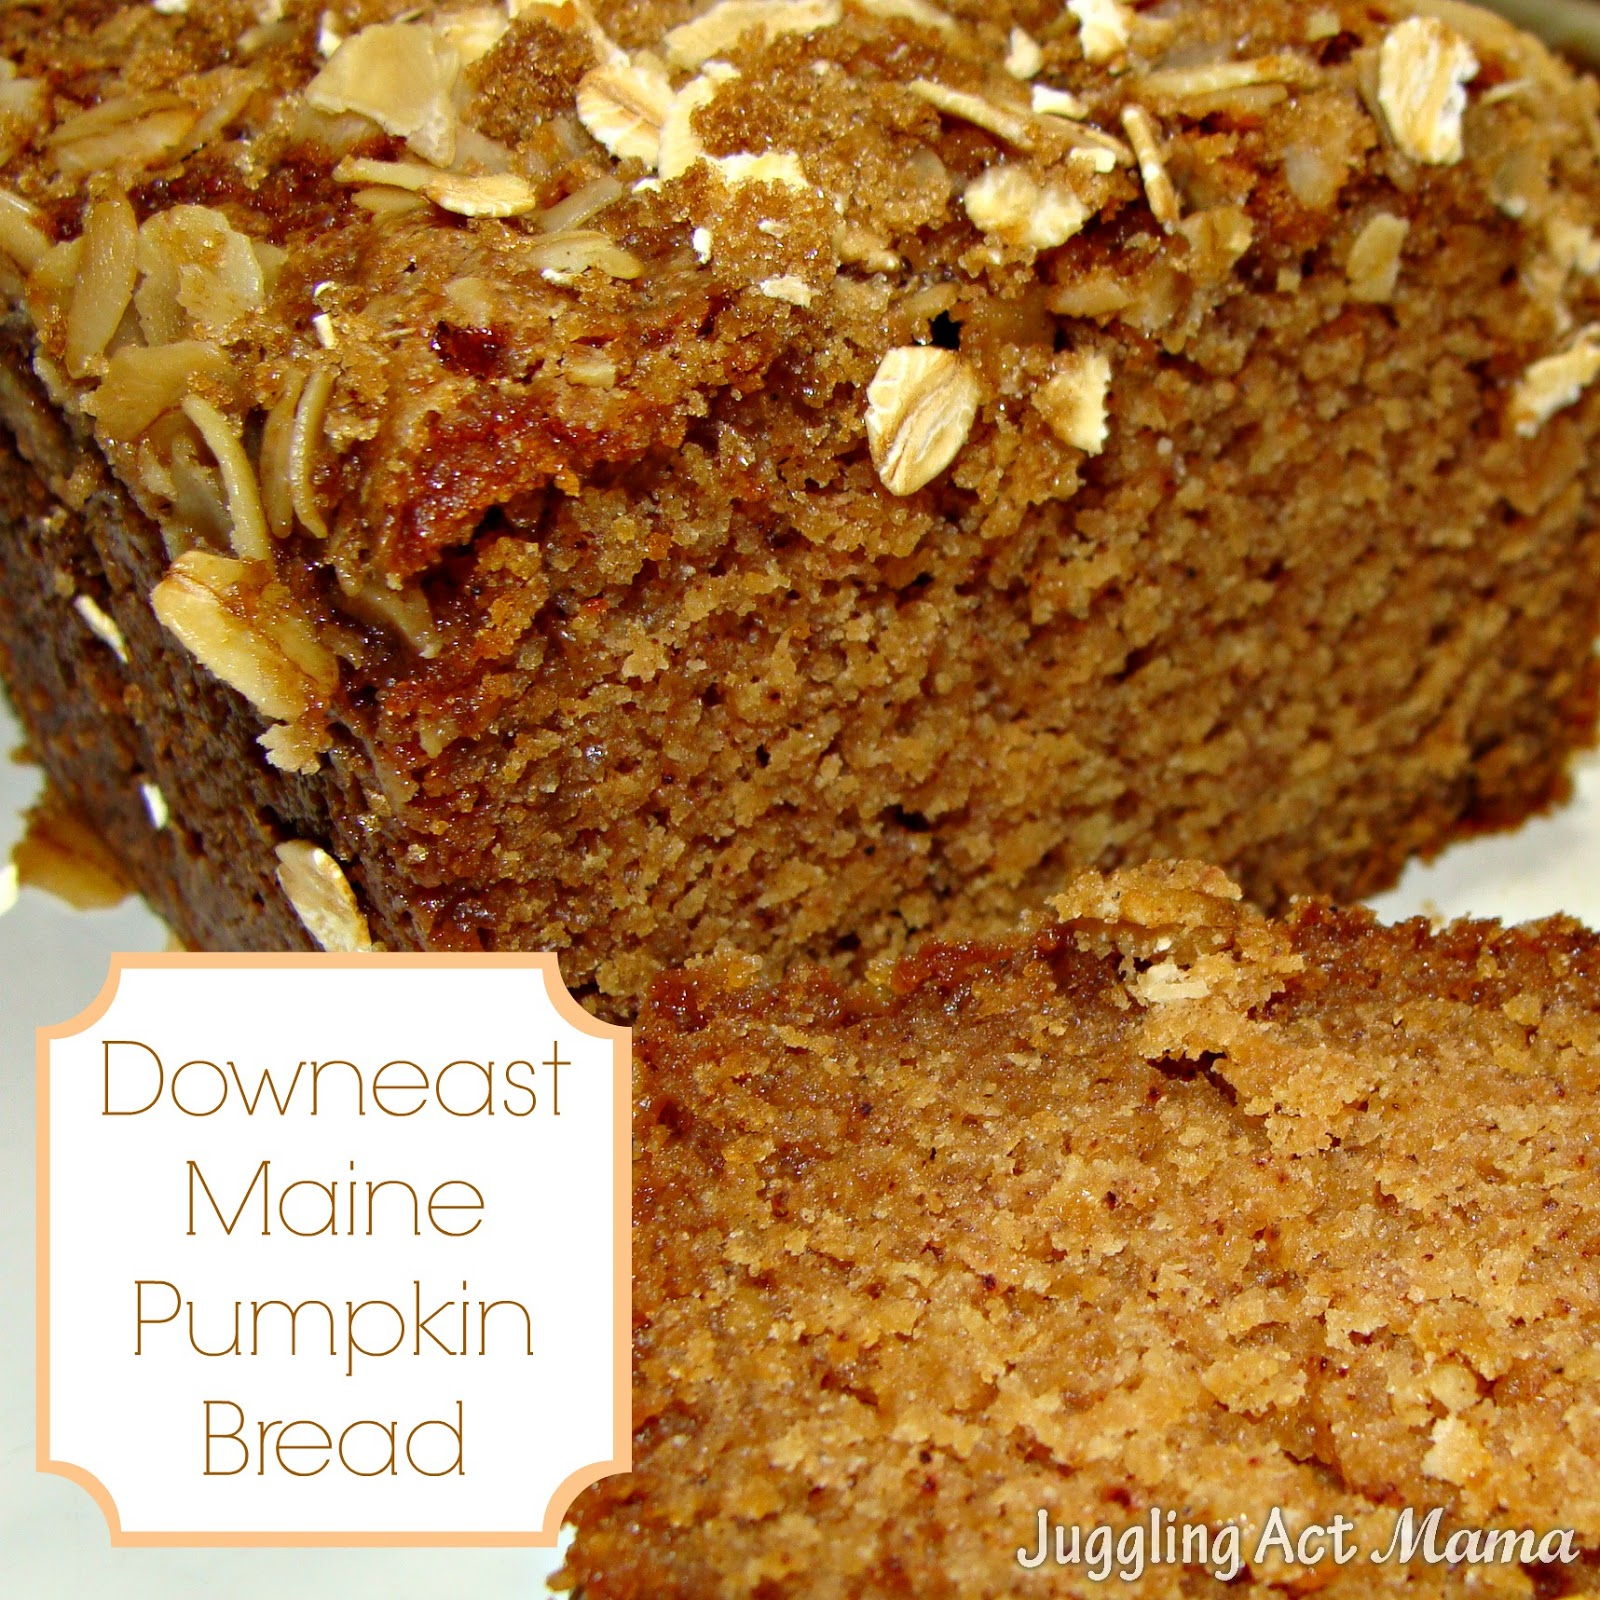 Downeast Maine Pumpkin Bread - Juggling Act Mama